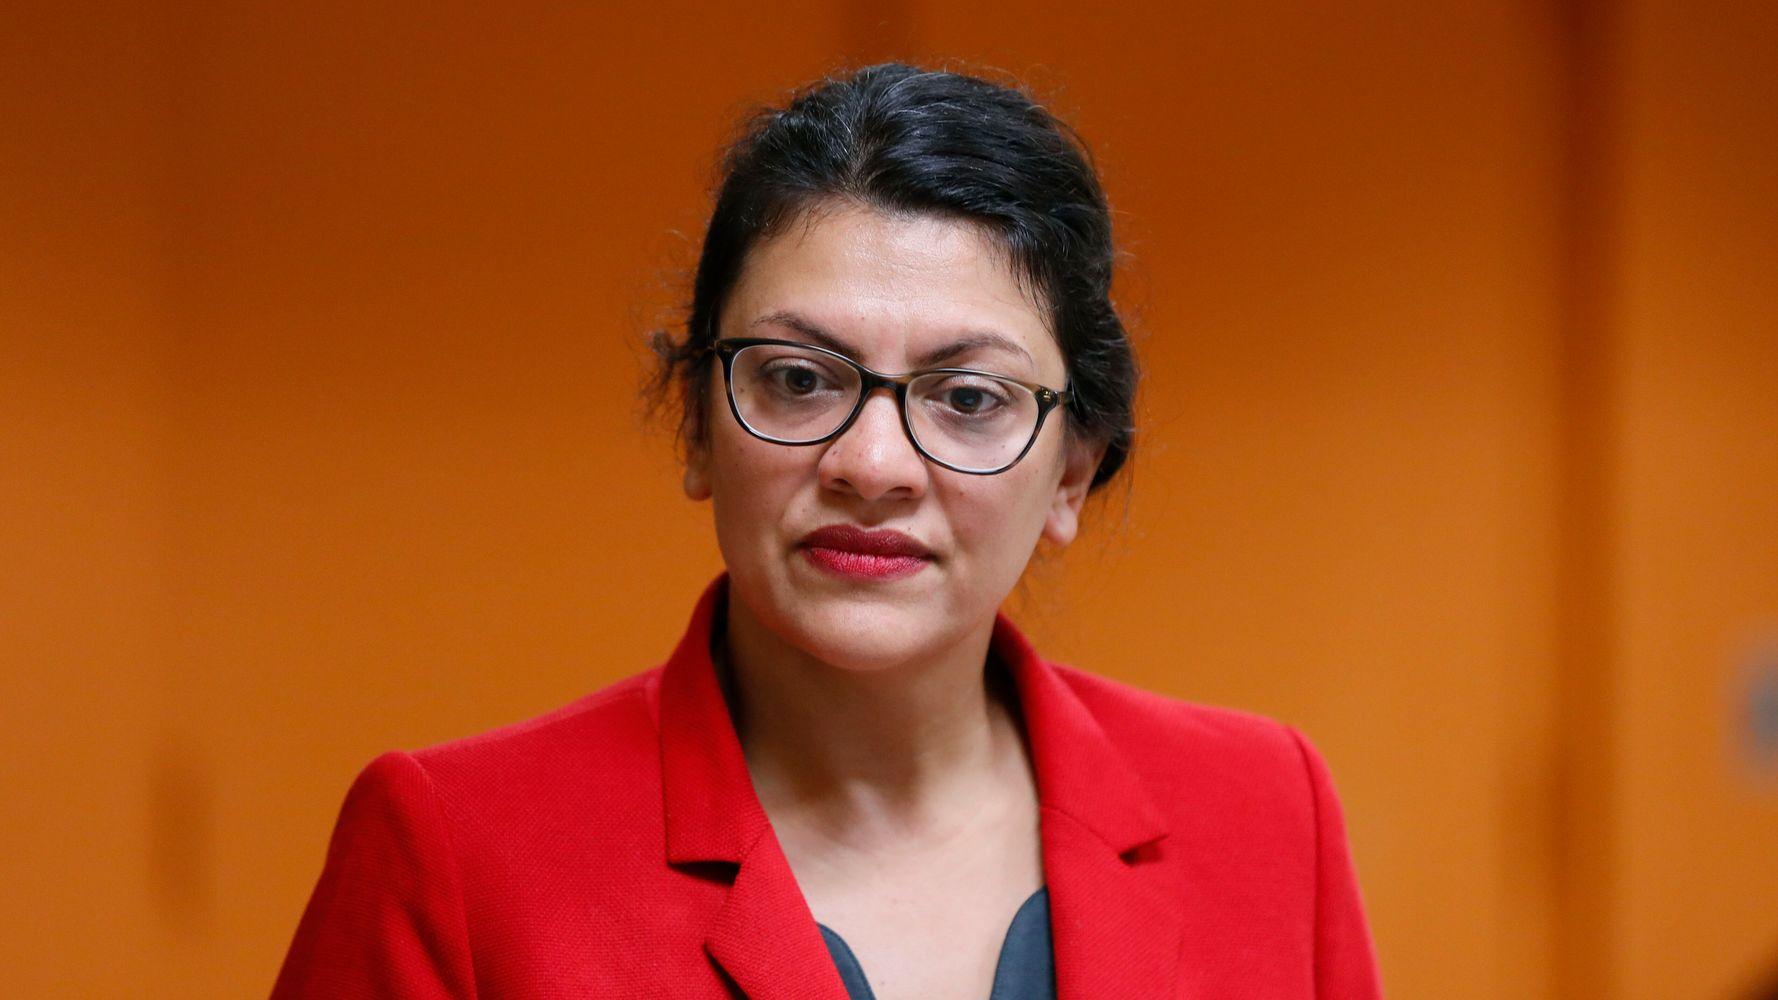 Westlake Legal Group 5d56748a220000d002f65fc4 EARLIER: Israel Says It Will Allow Rashida Tlaib Entry, Still Bars Ilhan Omar